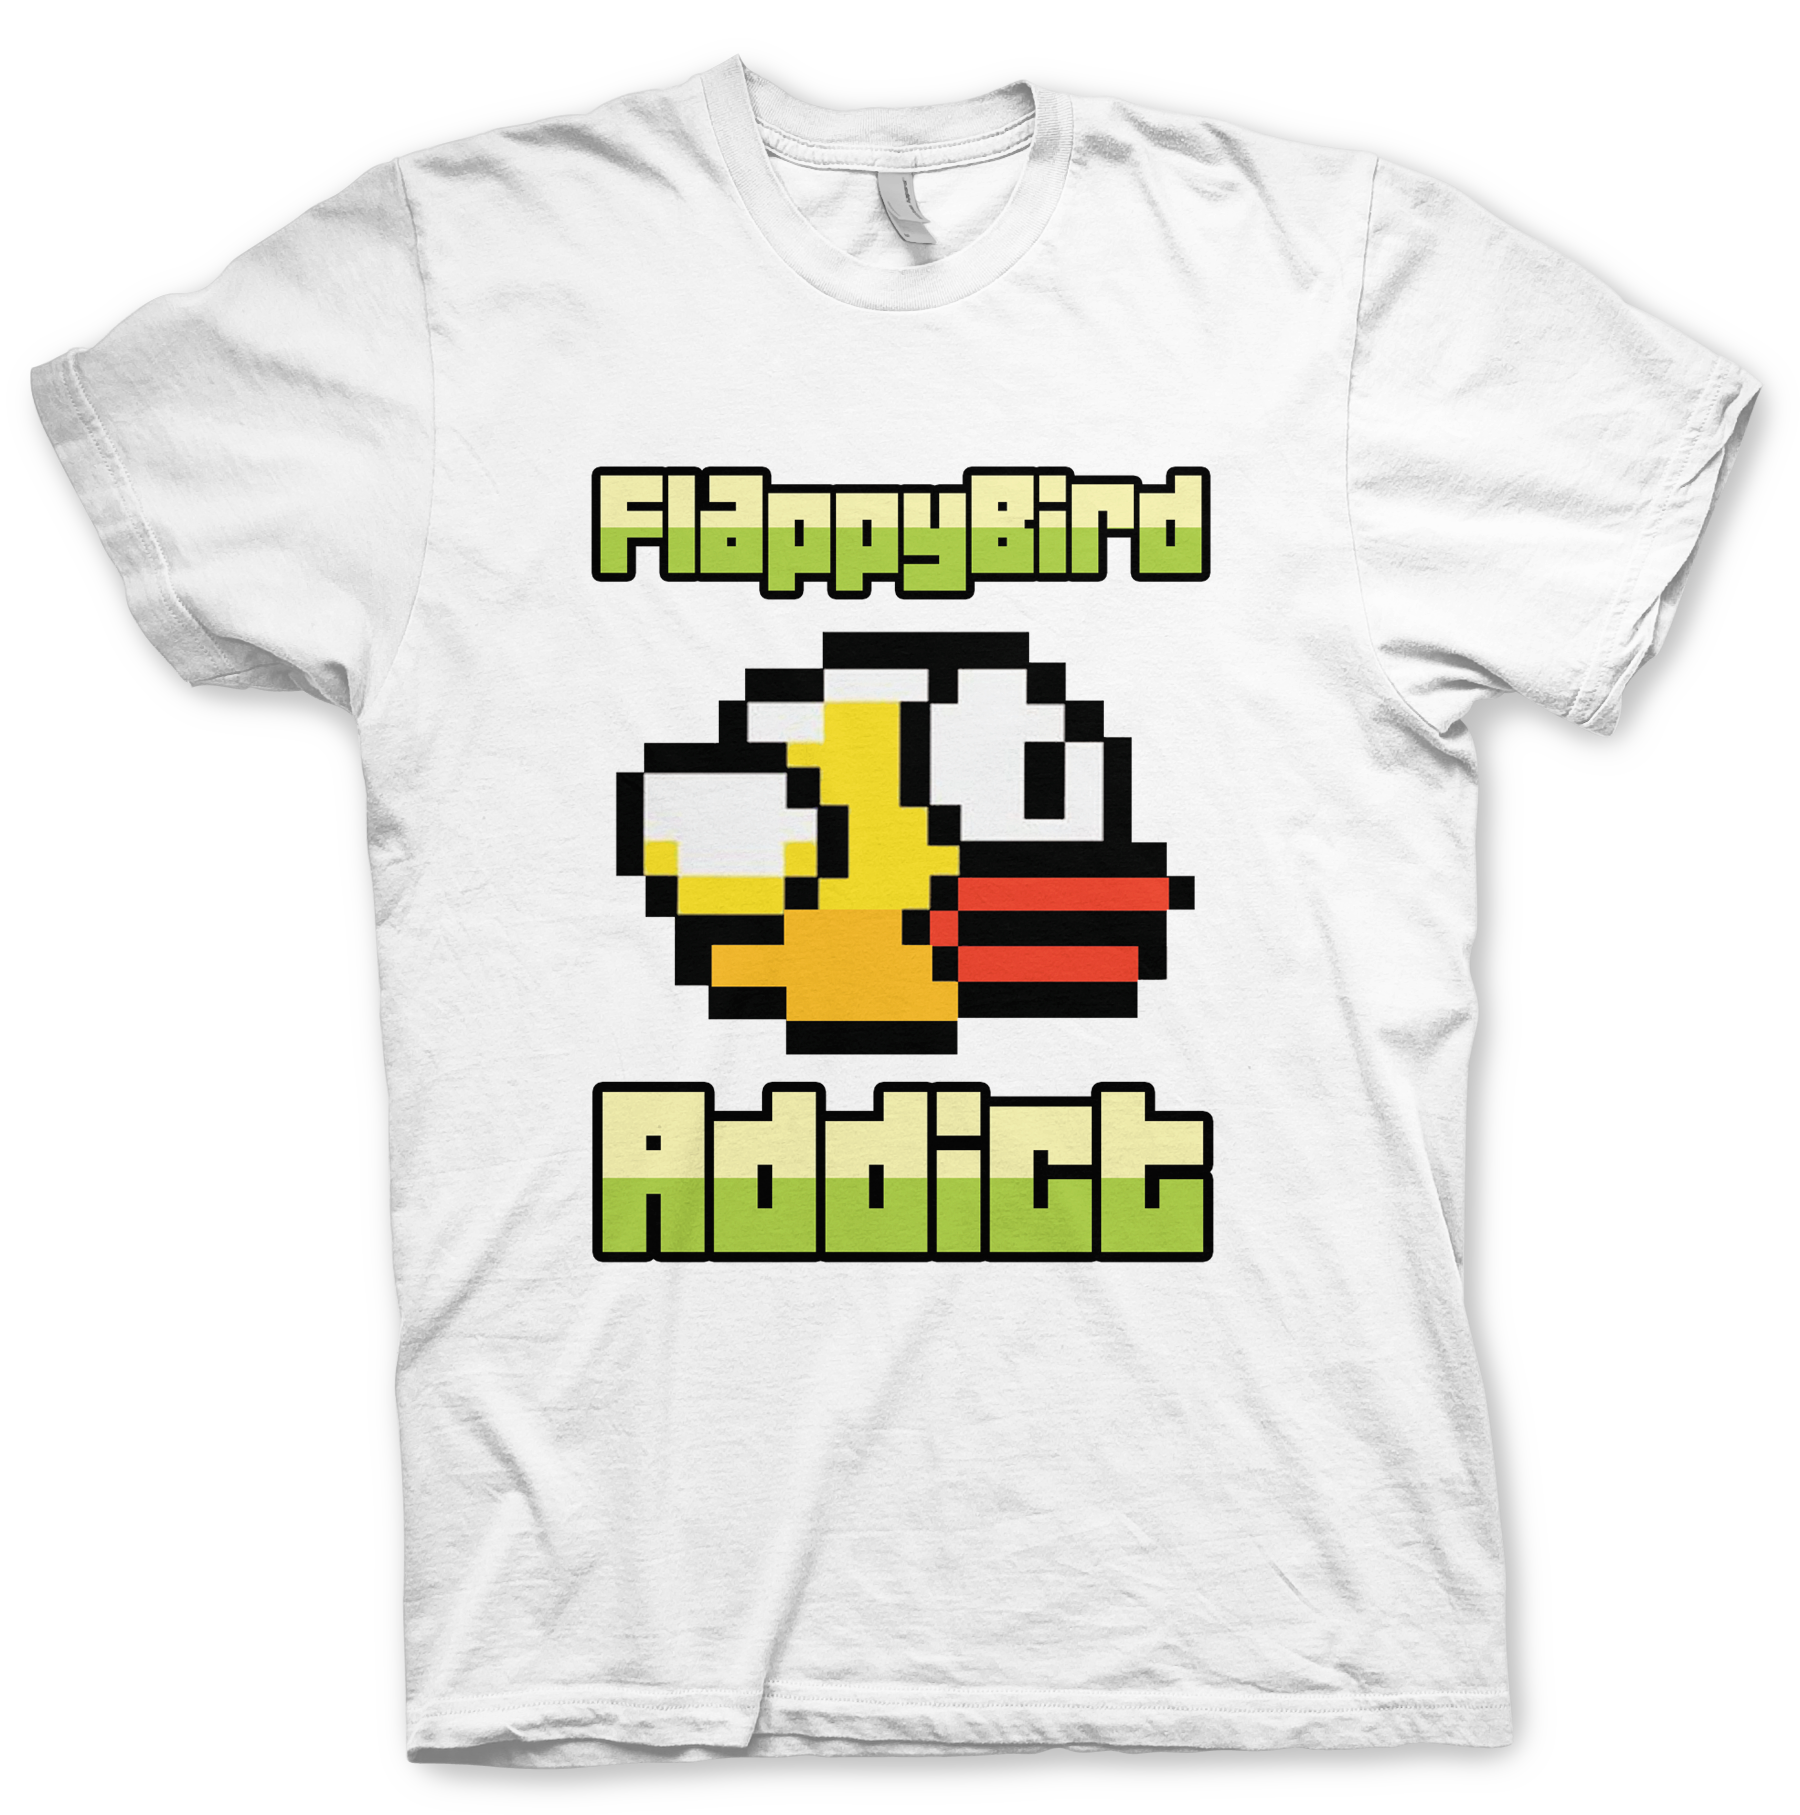 Words 2 Live By T-Shirts - Flappy Bird Addict - Words 2 Live By T-Shirts